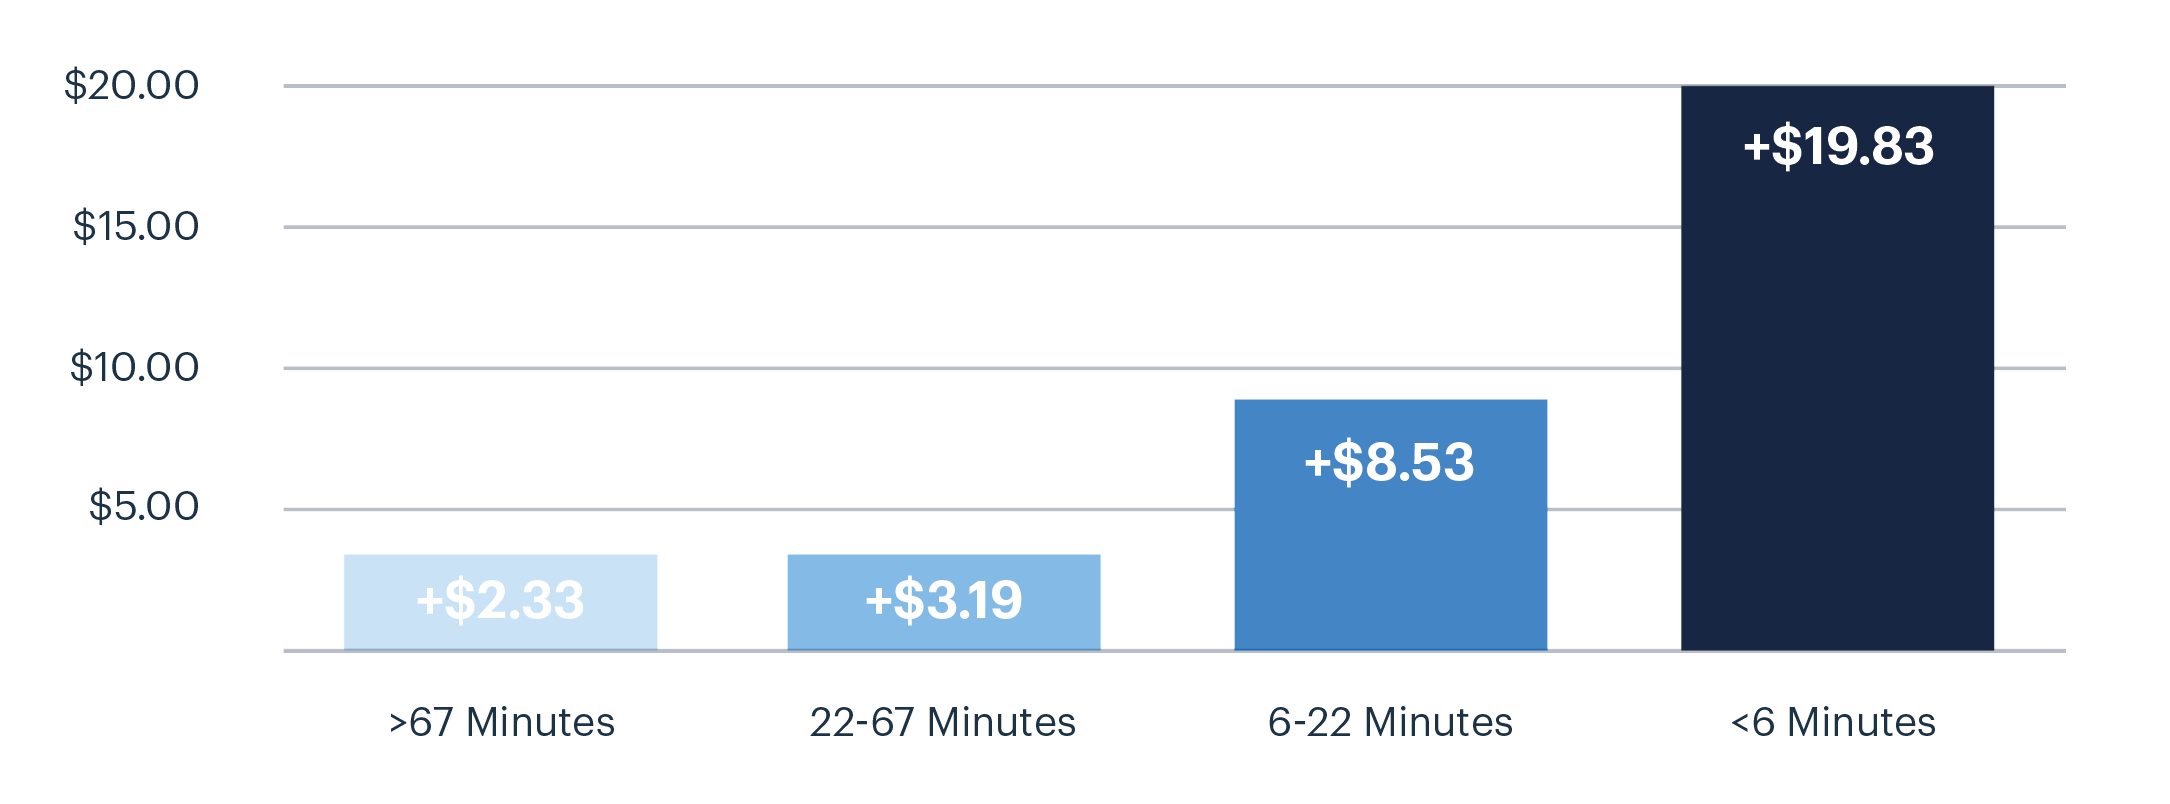 Faster replies lead to more revenue